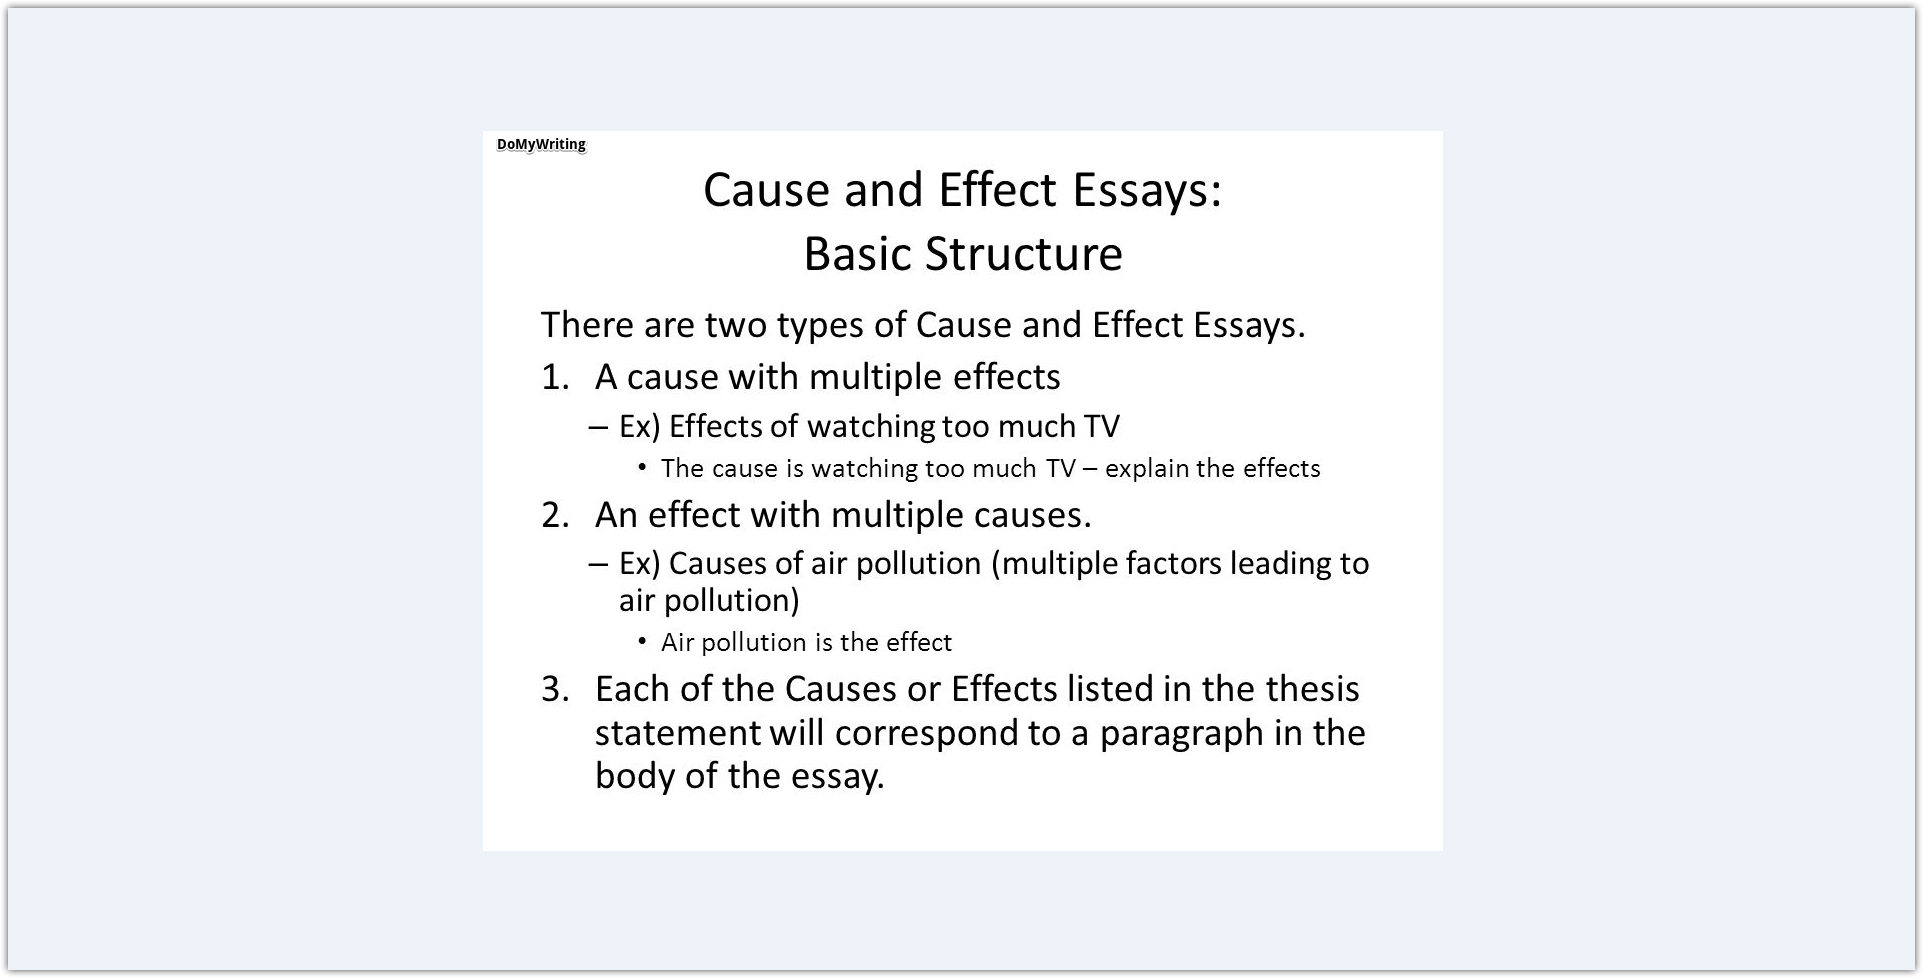 013 Cause And Effect Essay Topics Structure Dreaded Examples Divorce Basketball Example Bullying Full